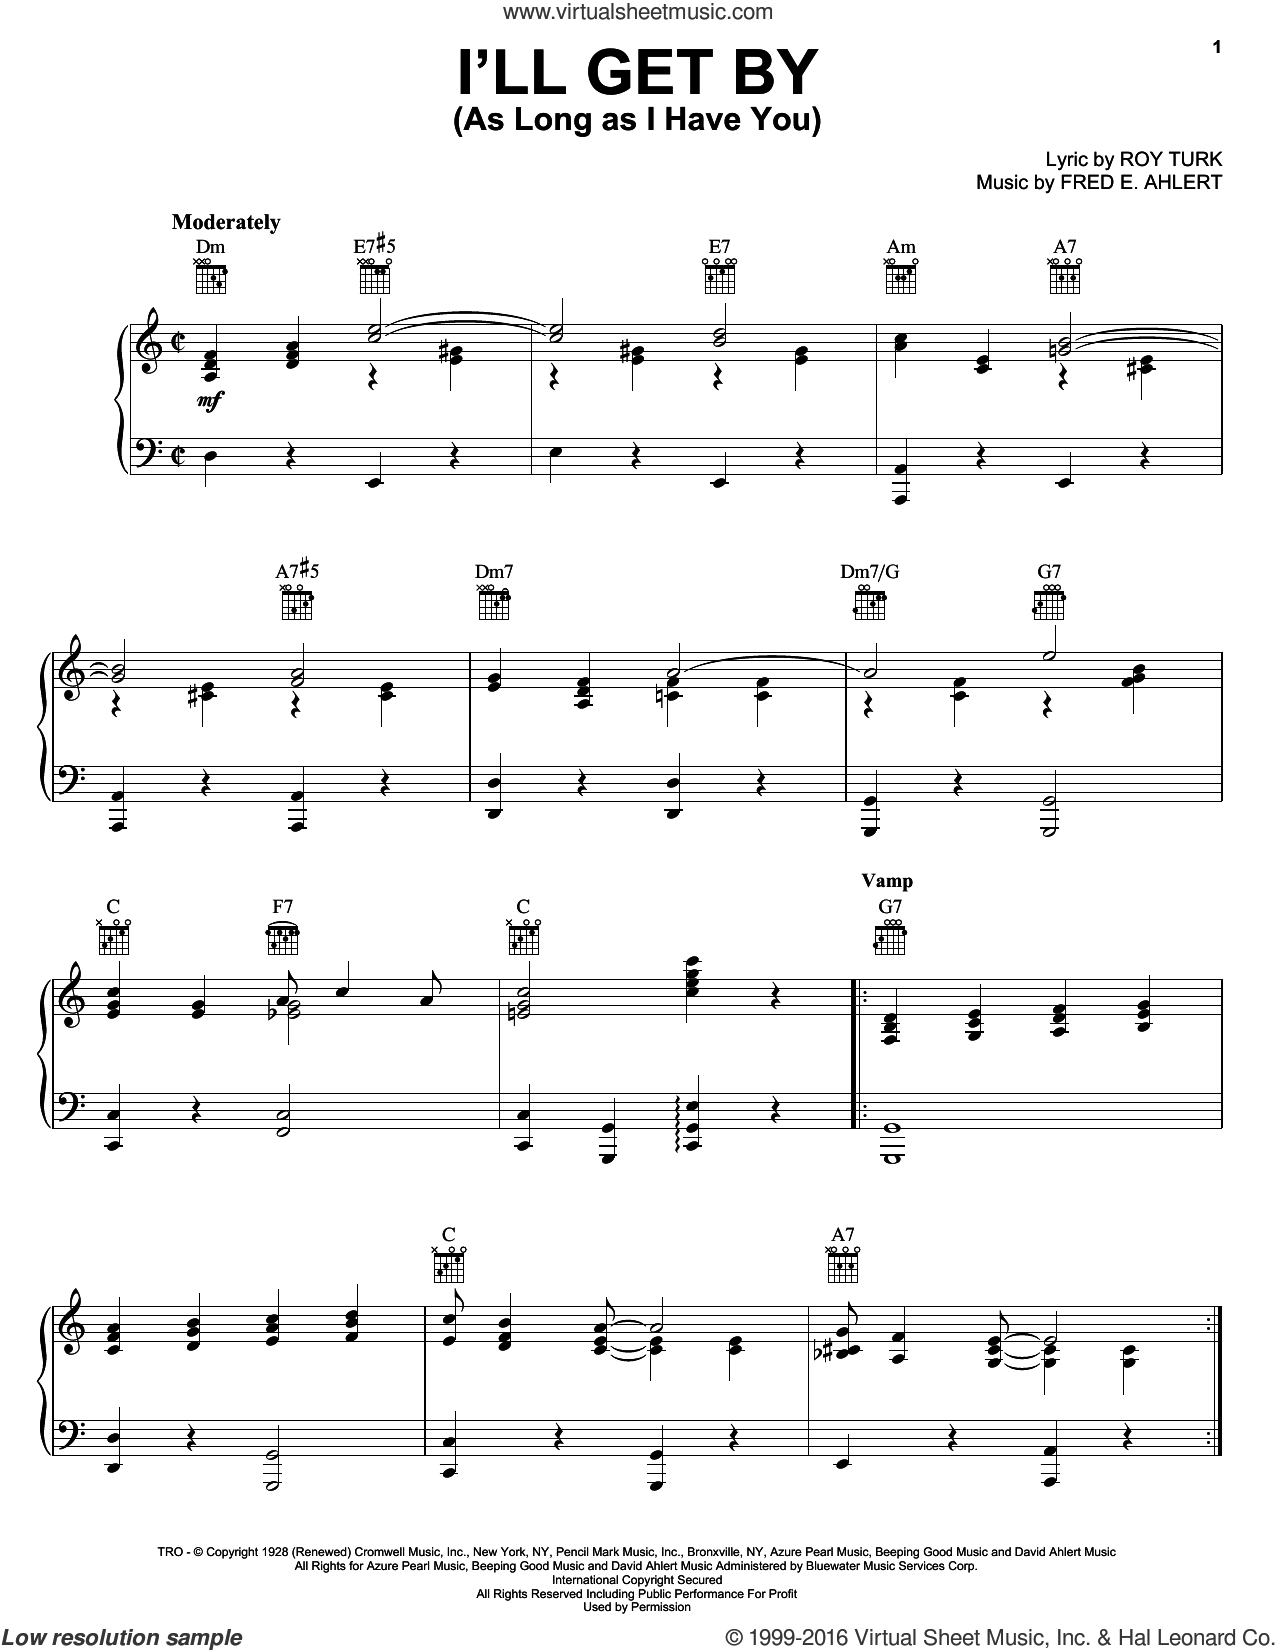 I'll Get By (As Long As I Have You) sheet music for voice, piano or guitar by Roy Turk